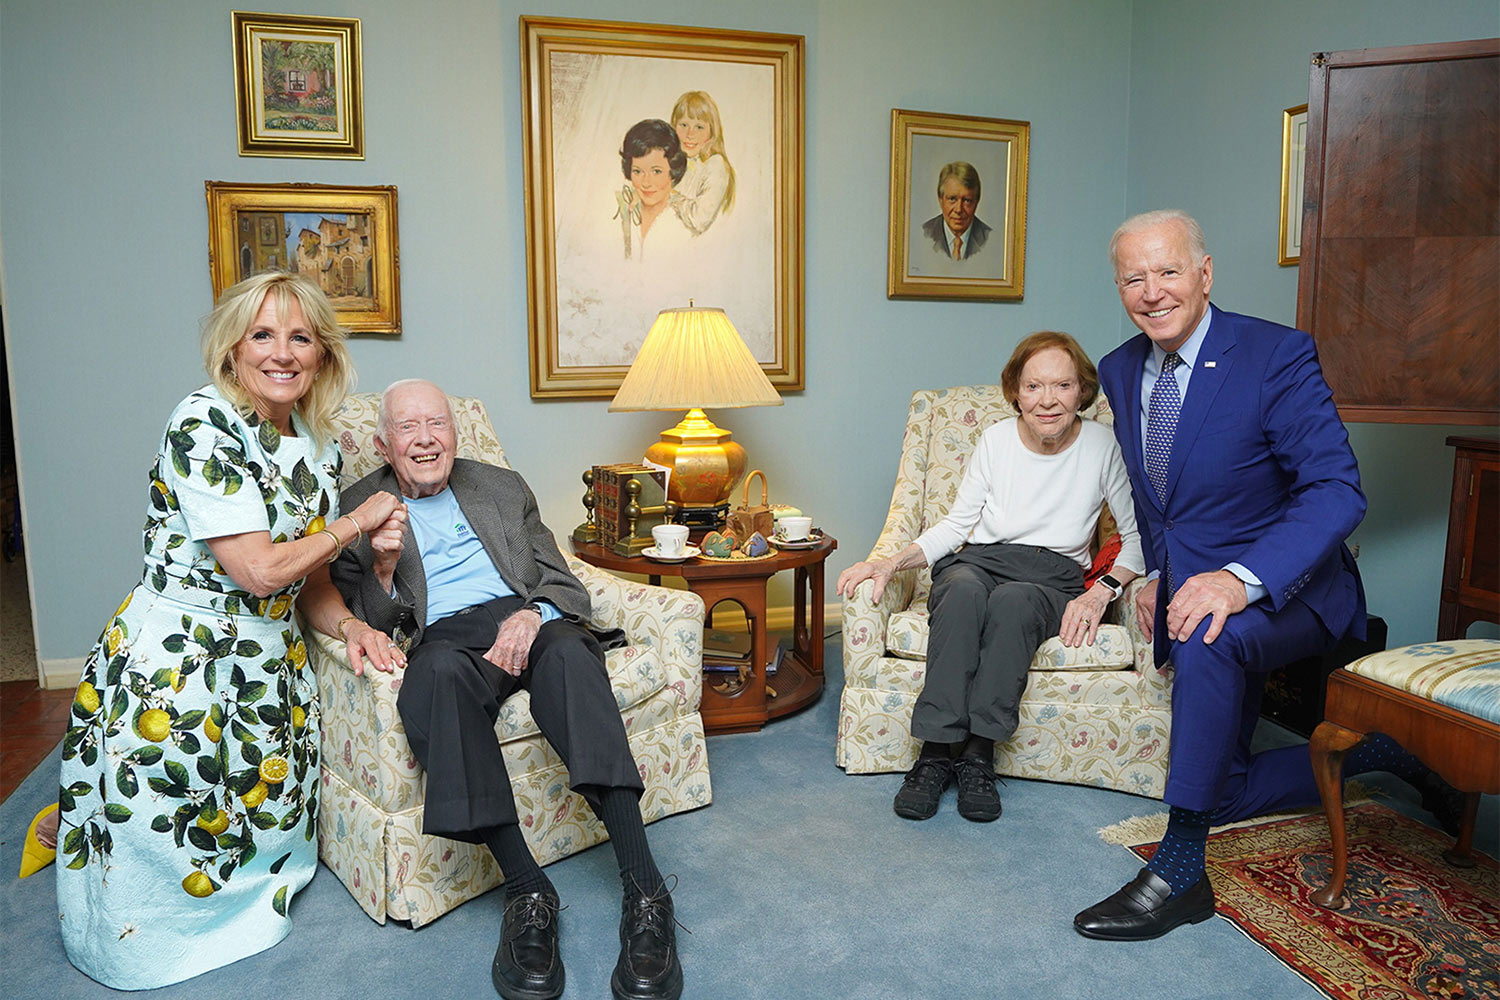 the Bidens and Carters